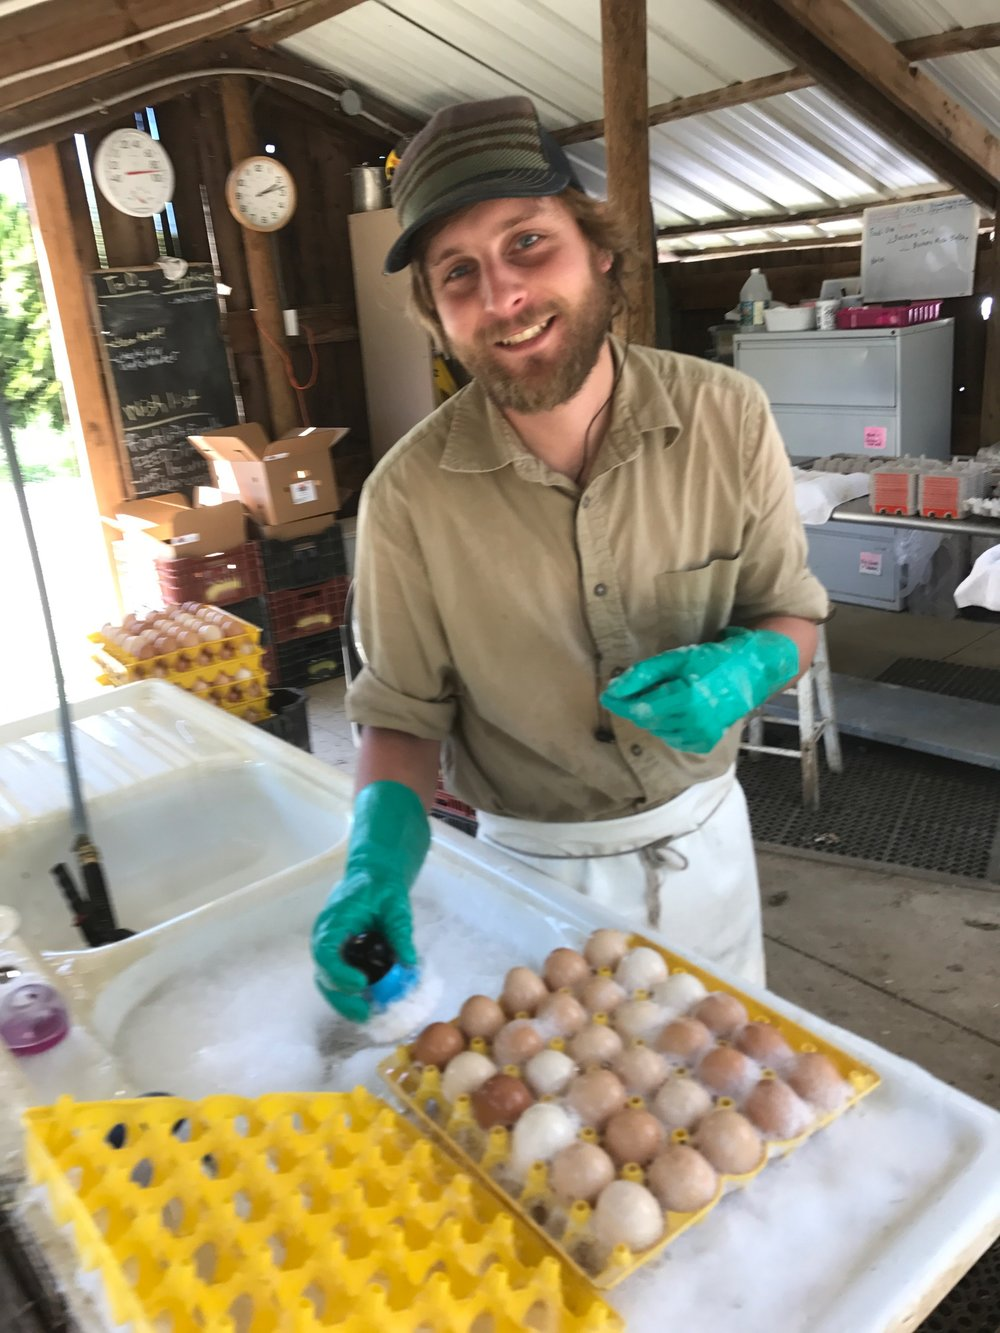 Meet Scott. He is in charge of the day-to-day chicken welfare and egg handling on the farm. You can also thank him for converting those muddy winter eggs into the clean, beautiful ones in your boxes over the past few months.  (Mostly) sunshine ahead!